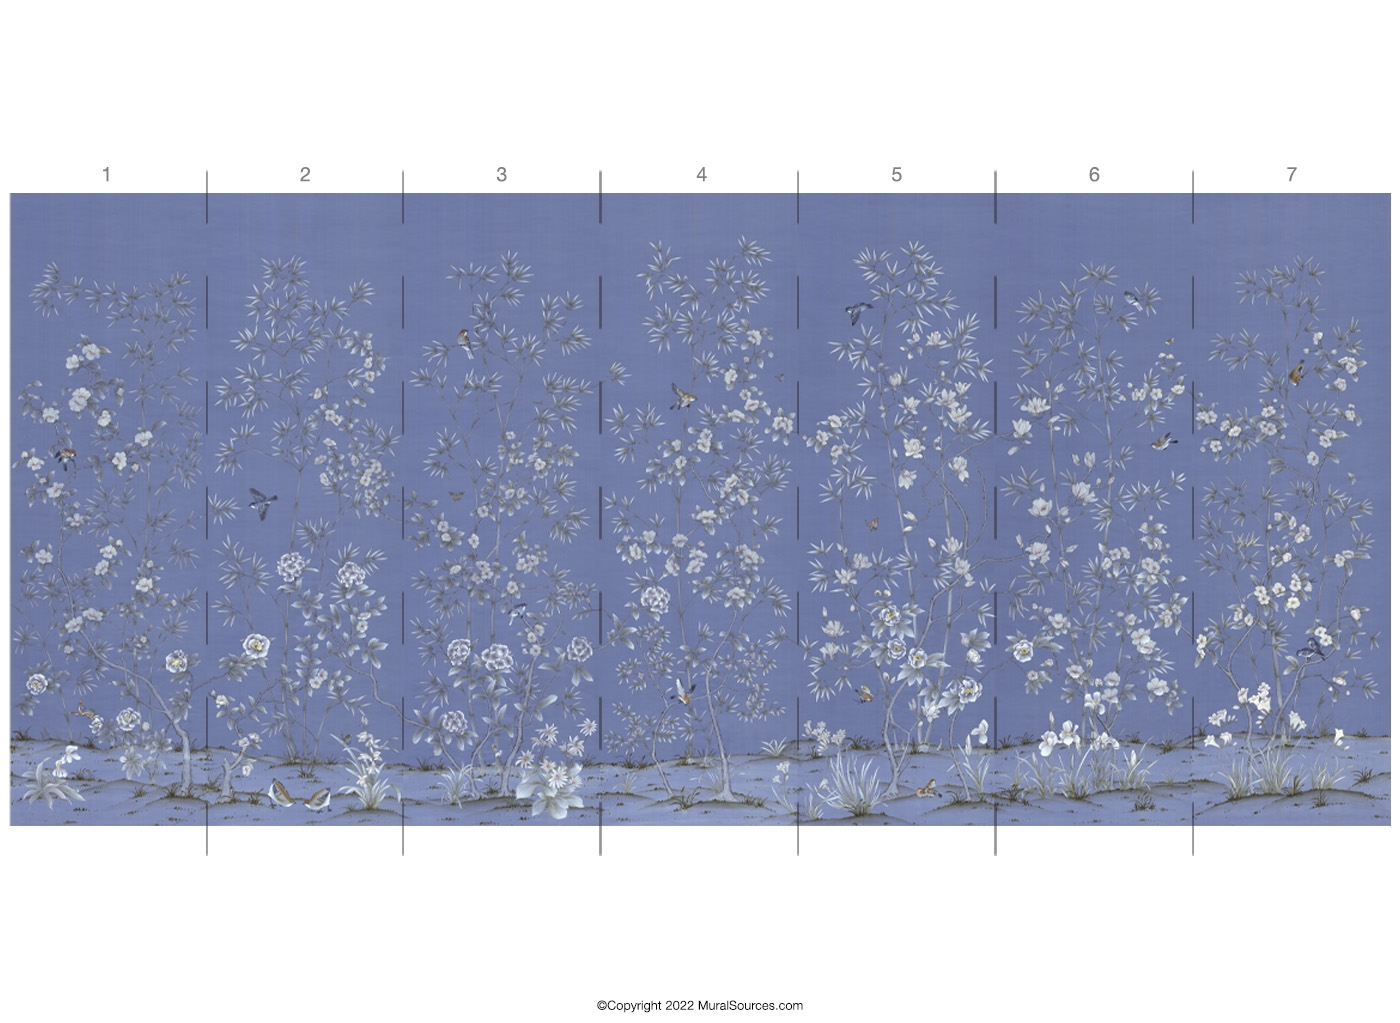 Palace garden blue chinoiserie mural wallpaper for Chinoiserie mural wallpaper